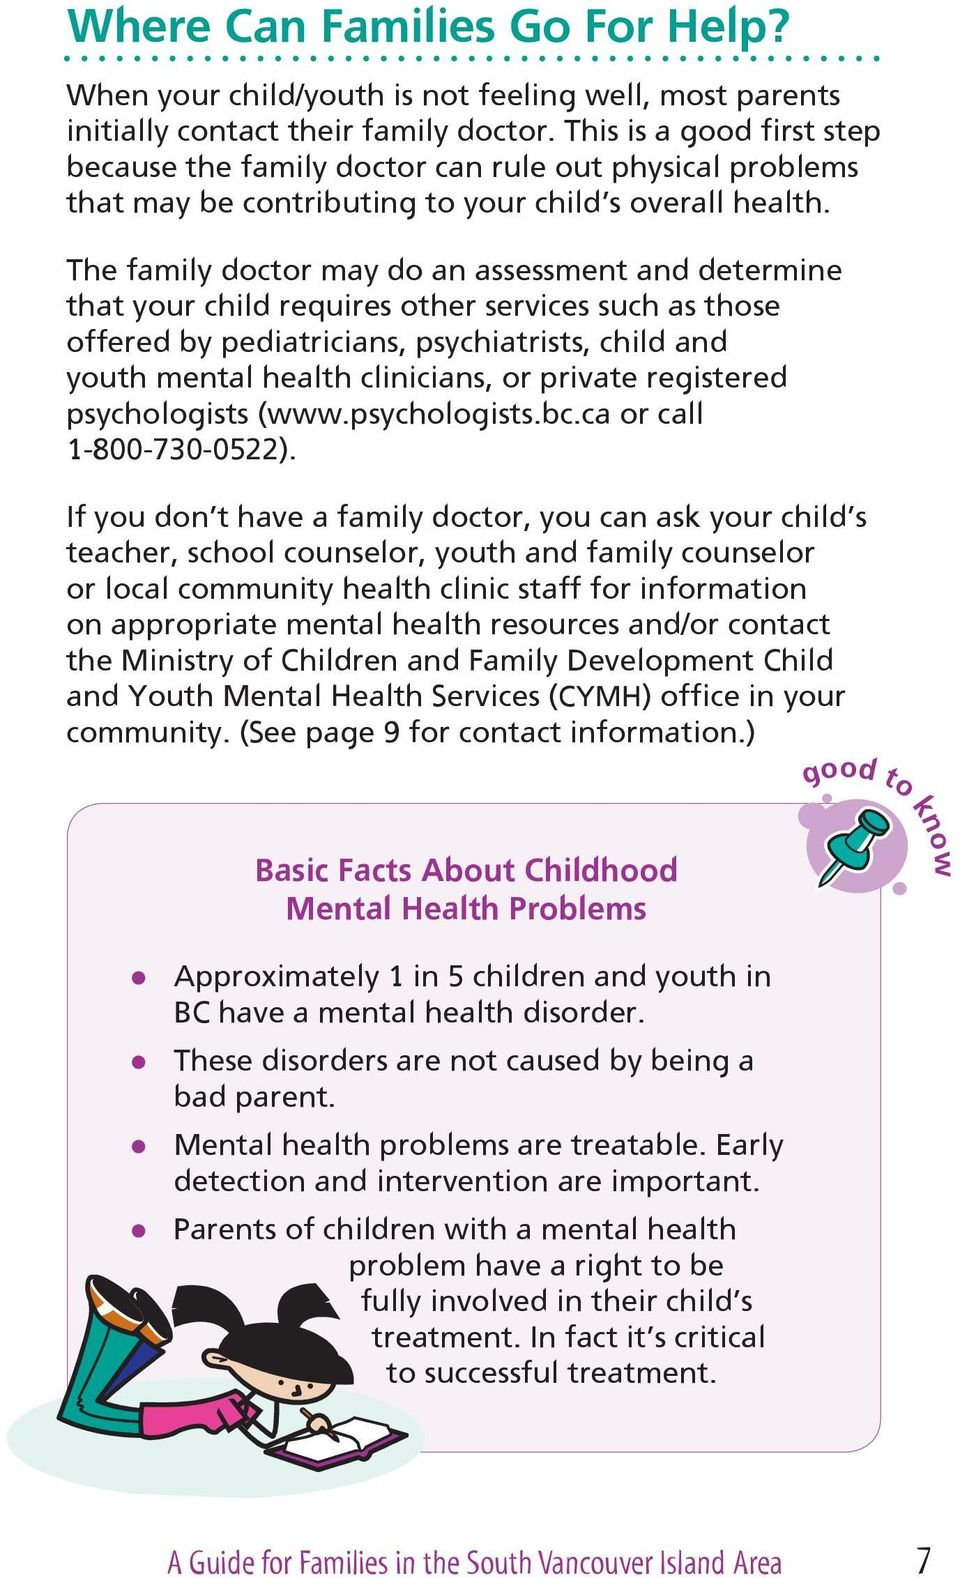 The family doctor may do an assessment and determine that your child requires other services such as those offered by pediatricians, psychiatrists, child and youth mental health clinicians, or